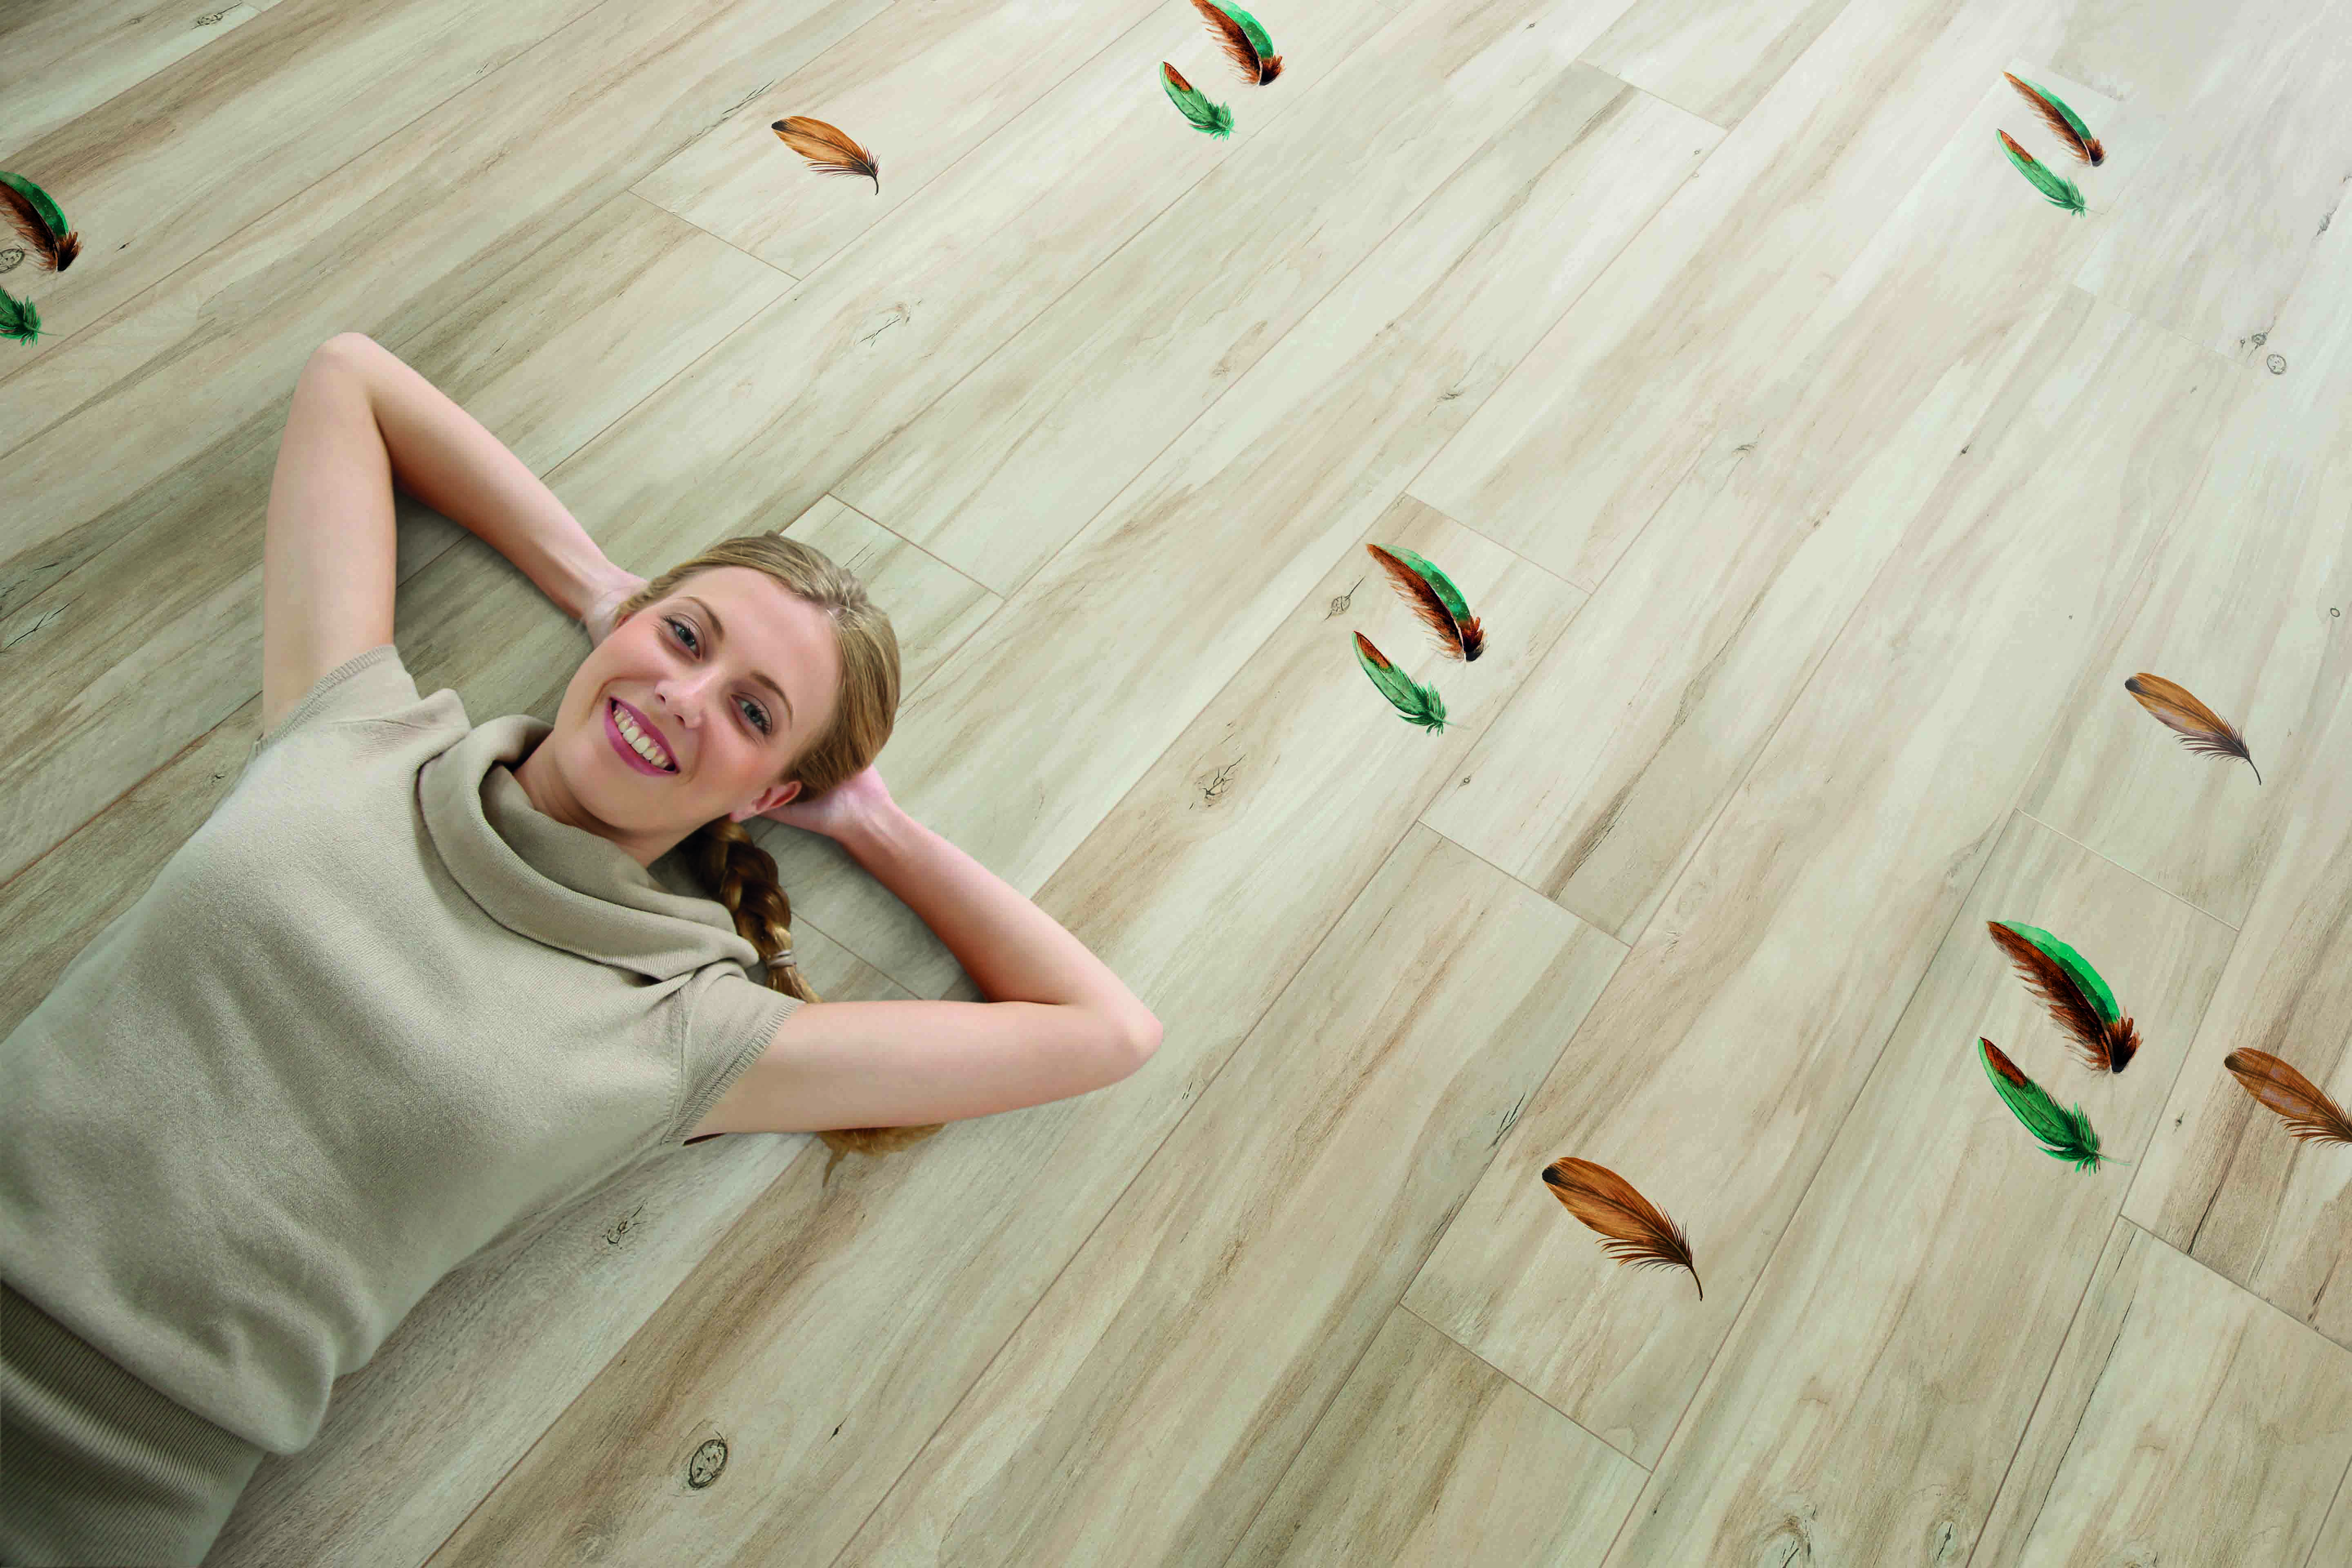 As with everything digital, the up-front process of creating designs — whether they are special stains, different wood grains, or other types of decoration for flooring — is fast and easy.